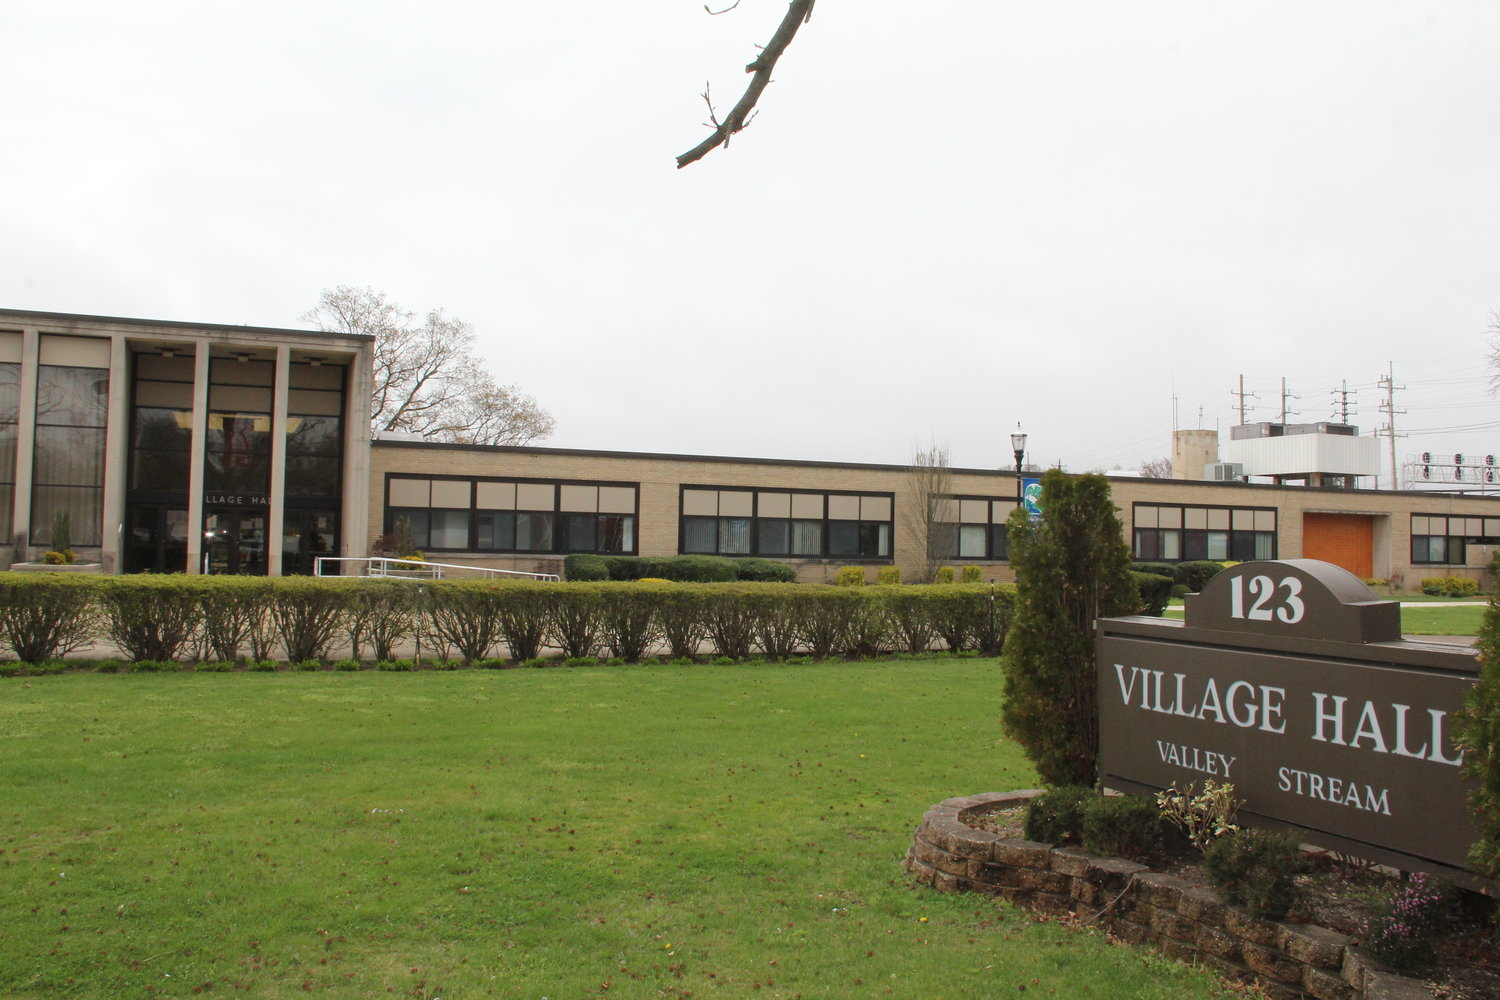 The Valley Stream Village Board scheduled a public hearing for 7 p.m. on Nov. 19 at Village Hall on proposed changes to 14 separate local laws at its Oct. 15 board of trustees meeting.